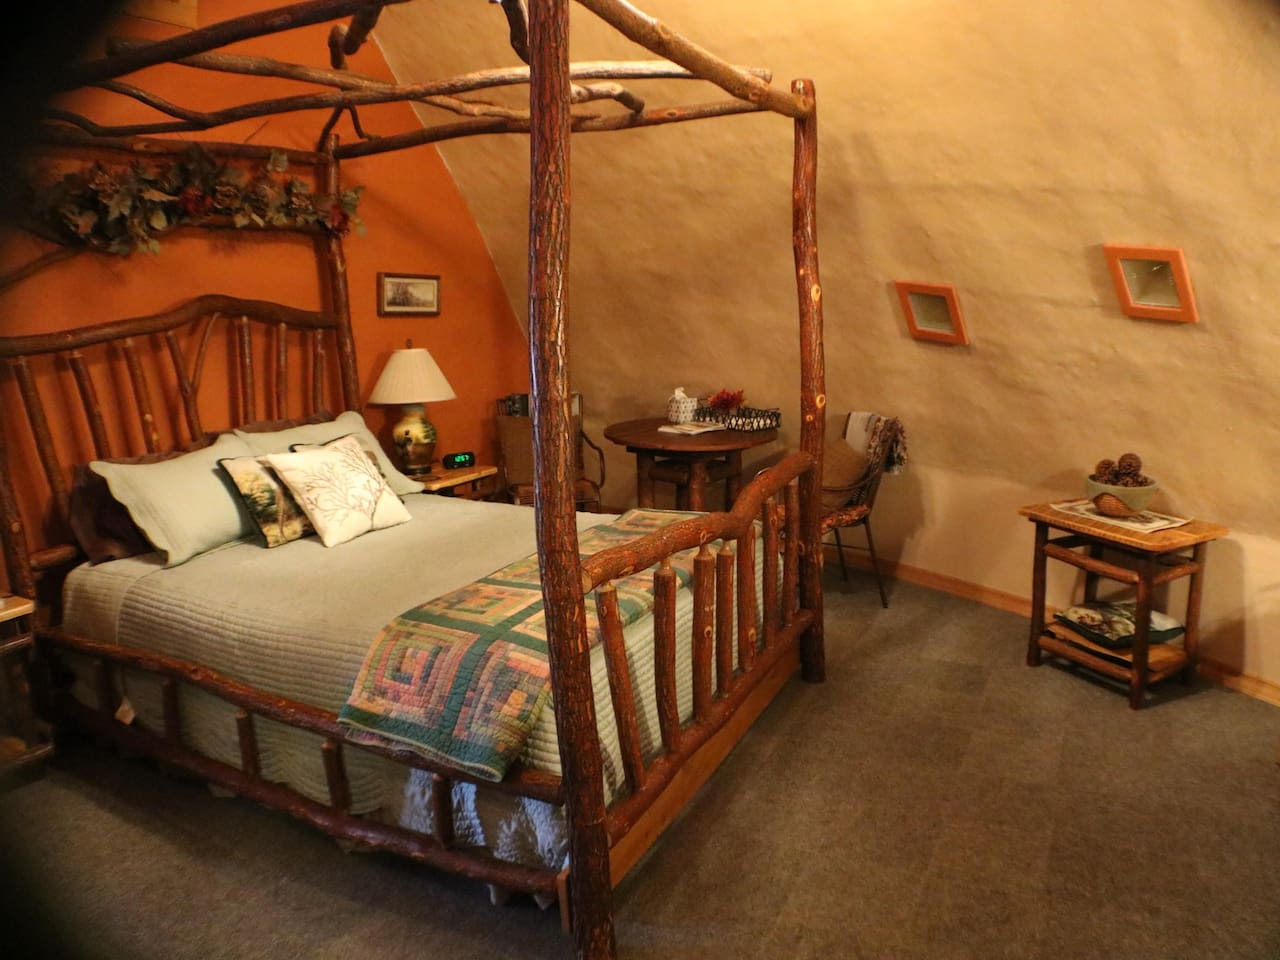 The Pheasant room has a queen bed on a frame that was made for this themed rustic room.